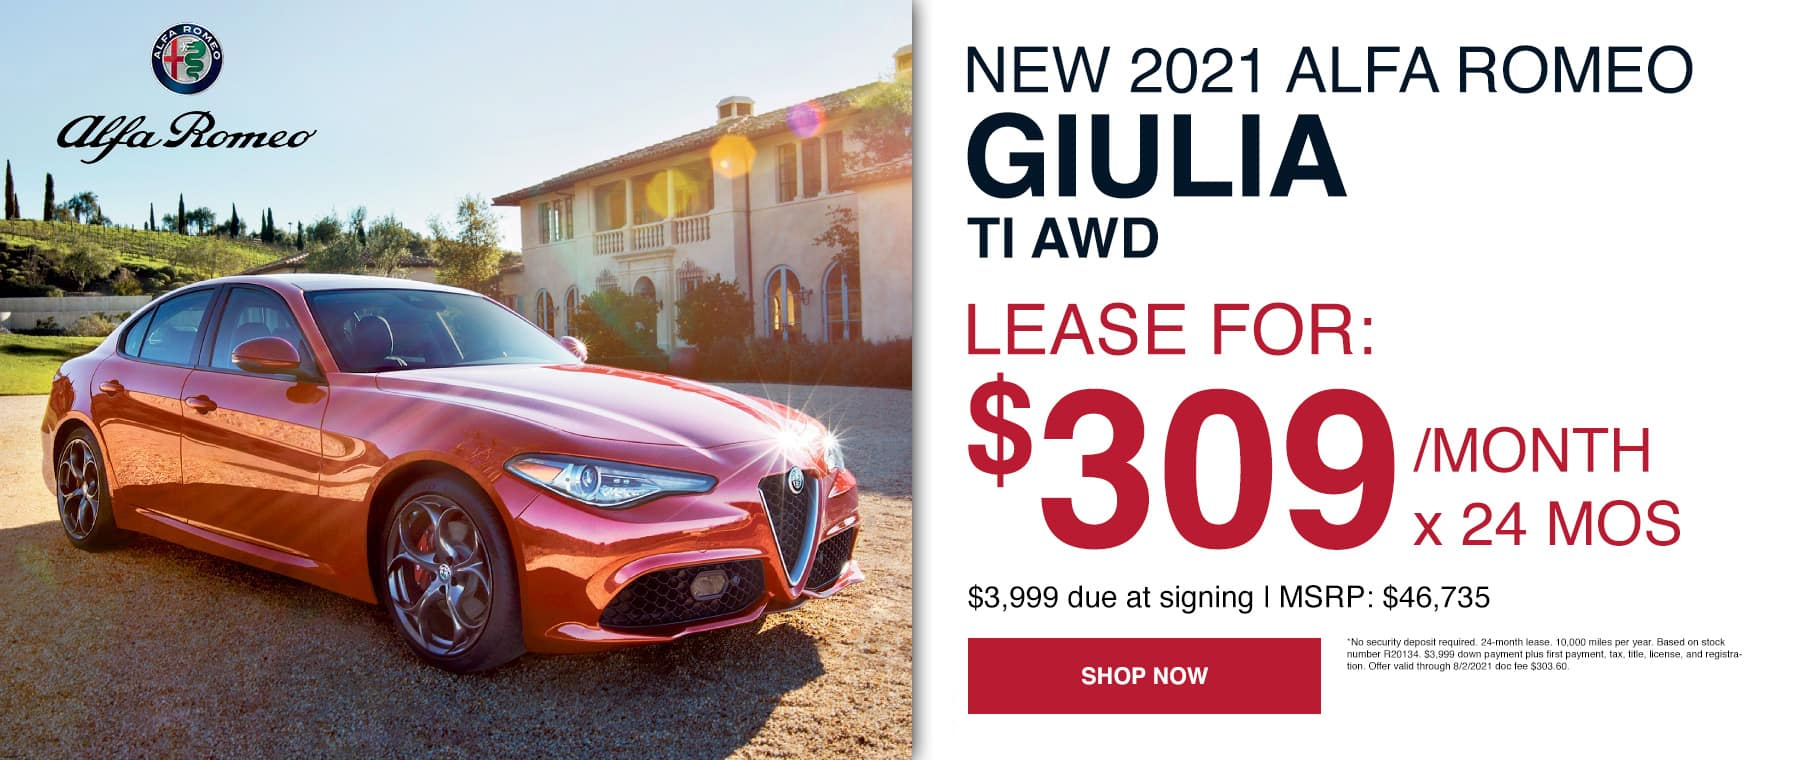 Lease for: $309/month x 24 mos $3,999 due at signing   MSRP: $46,735